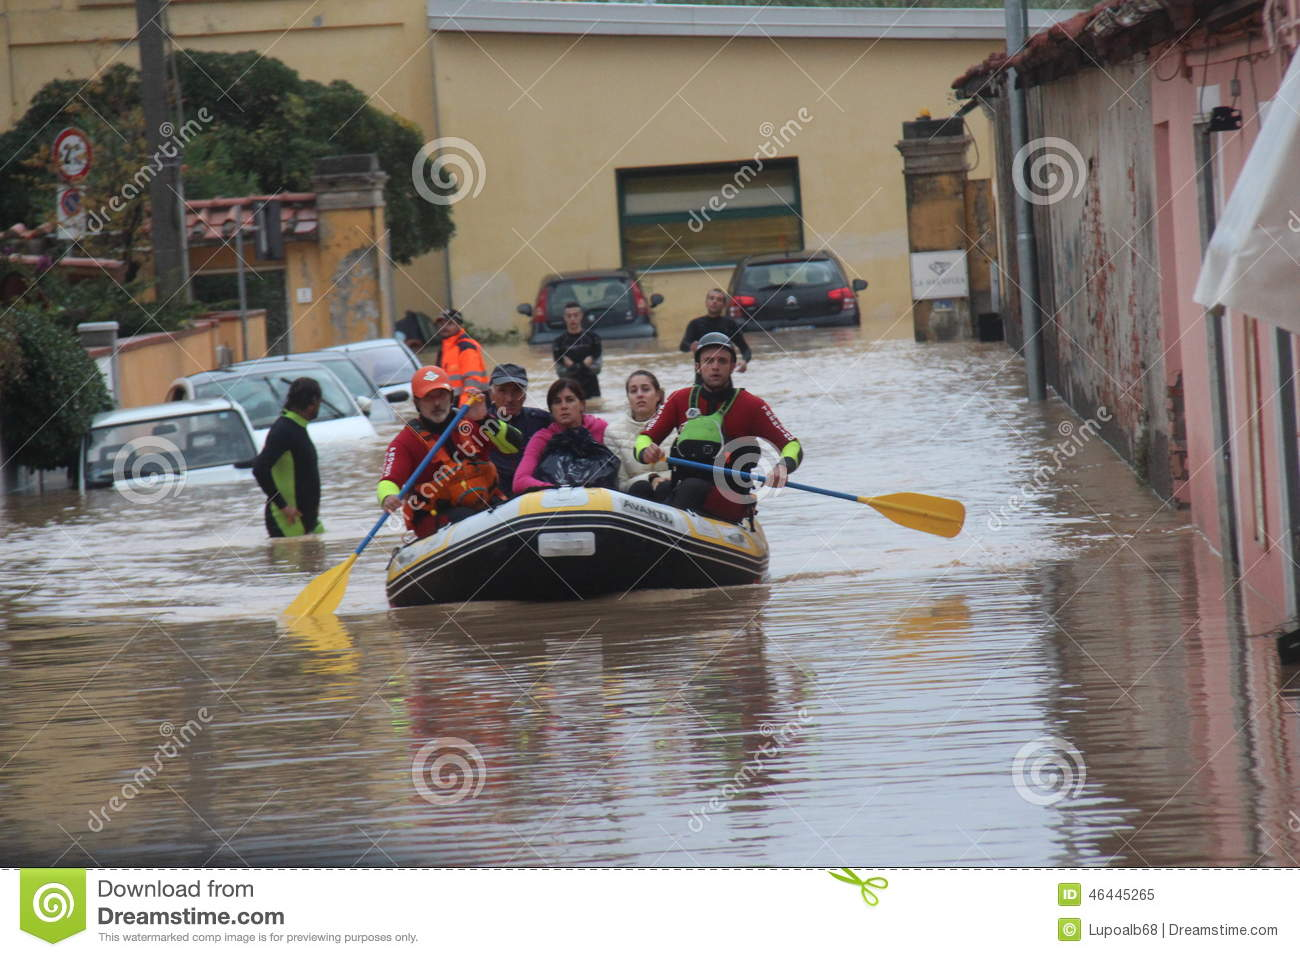 Flooded residential areas In Marina di Carrara and rescue